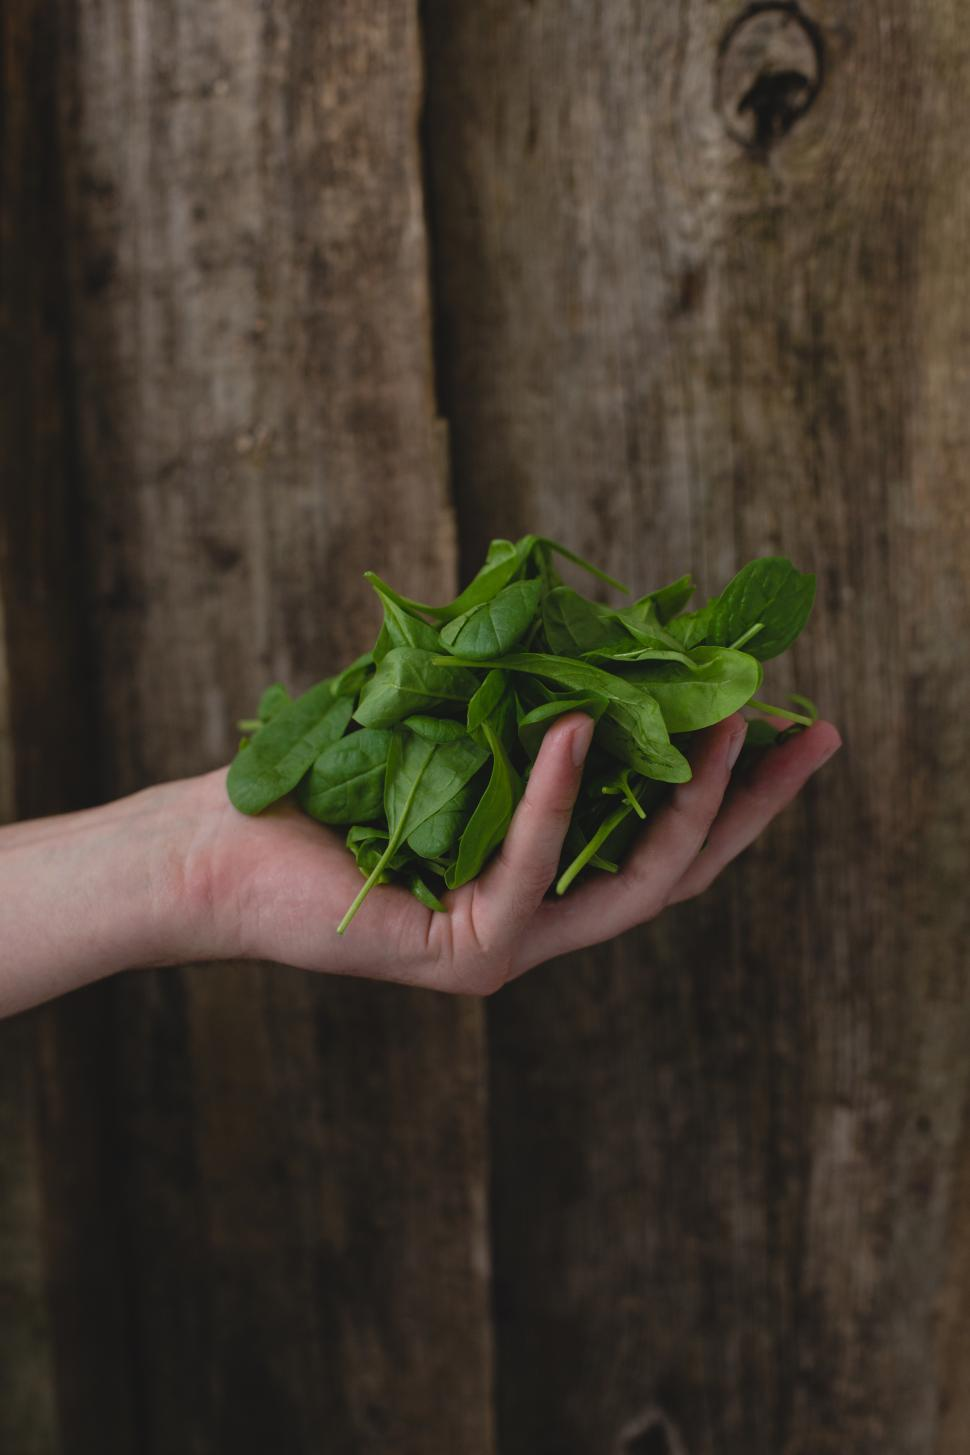 Download Free Stock HD Photo of Man holding spinach Online